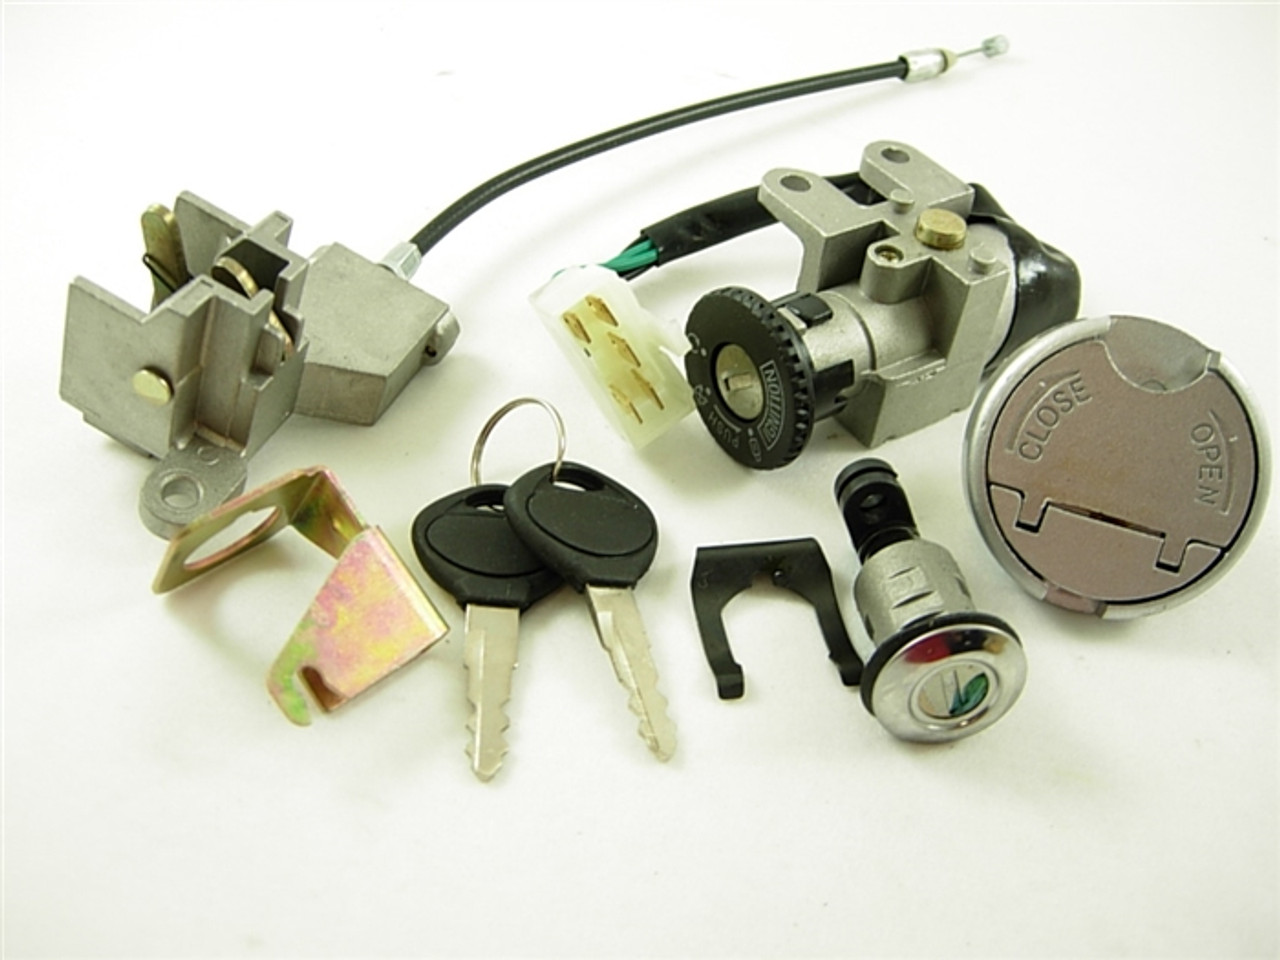 IGNITION /KEY SWITCH 11051-A59-7